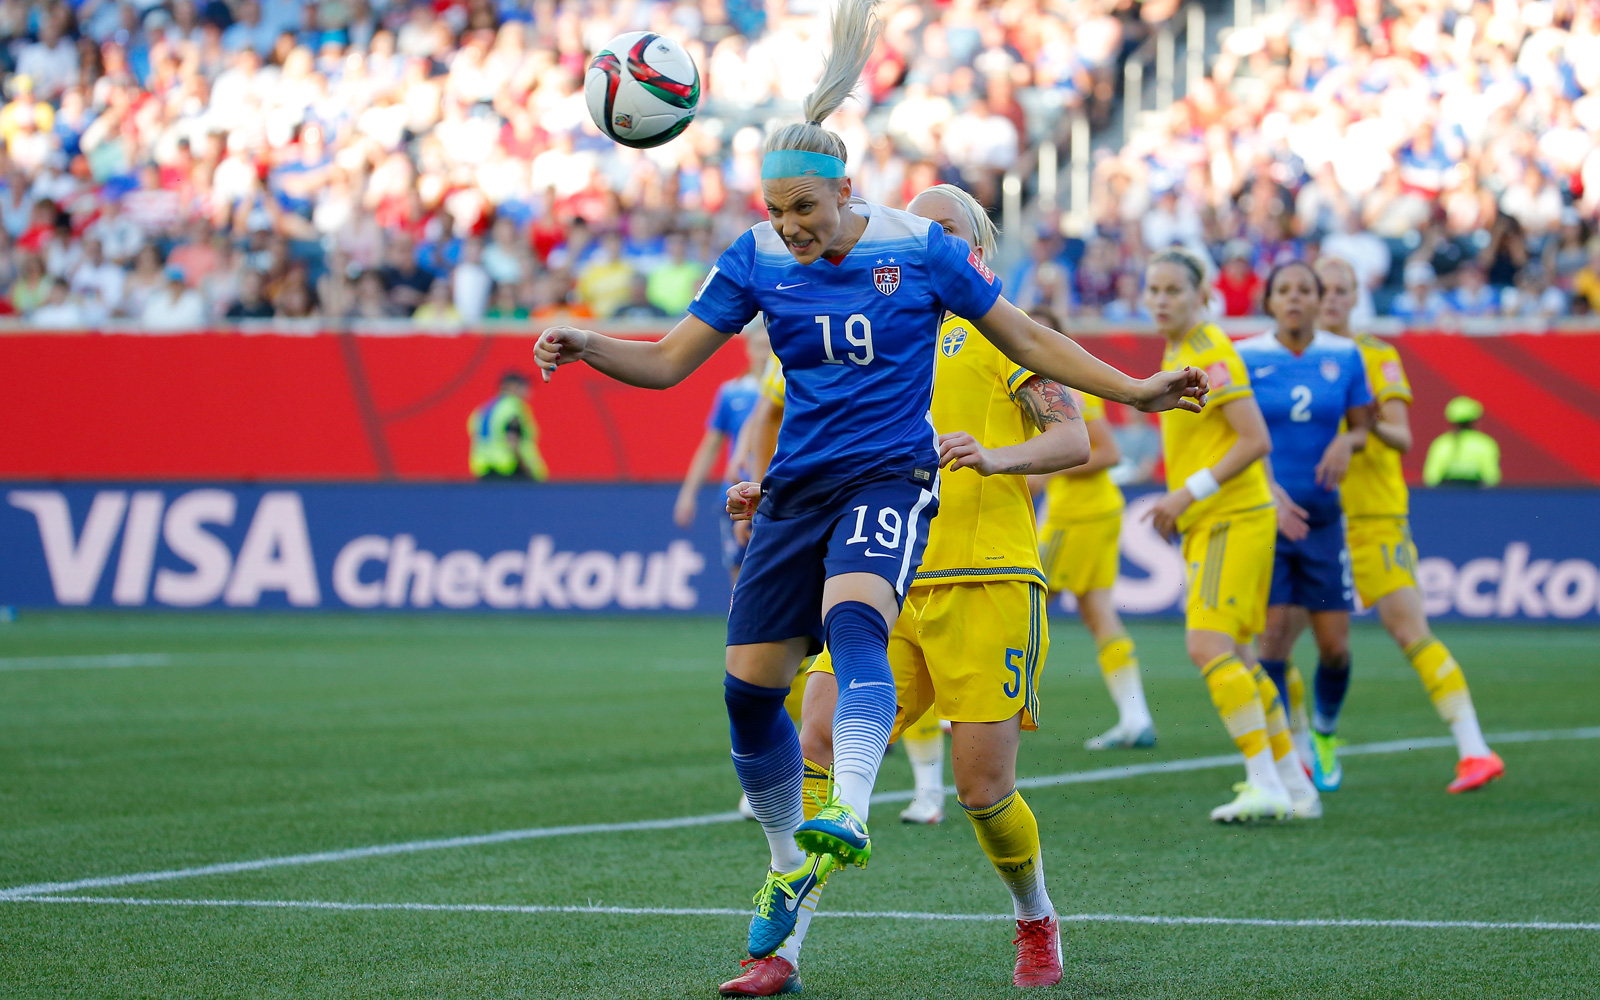 Julie Johnston wins the header in a dominant showing on the U.S. back line, helping the Americans preserve a 0-0 draw against Sweden in the second game of the Women's World Cup group stage.